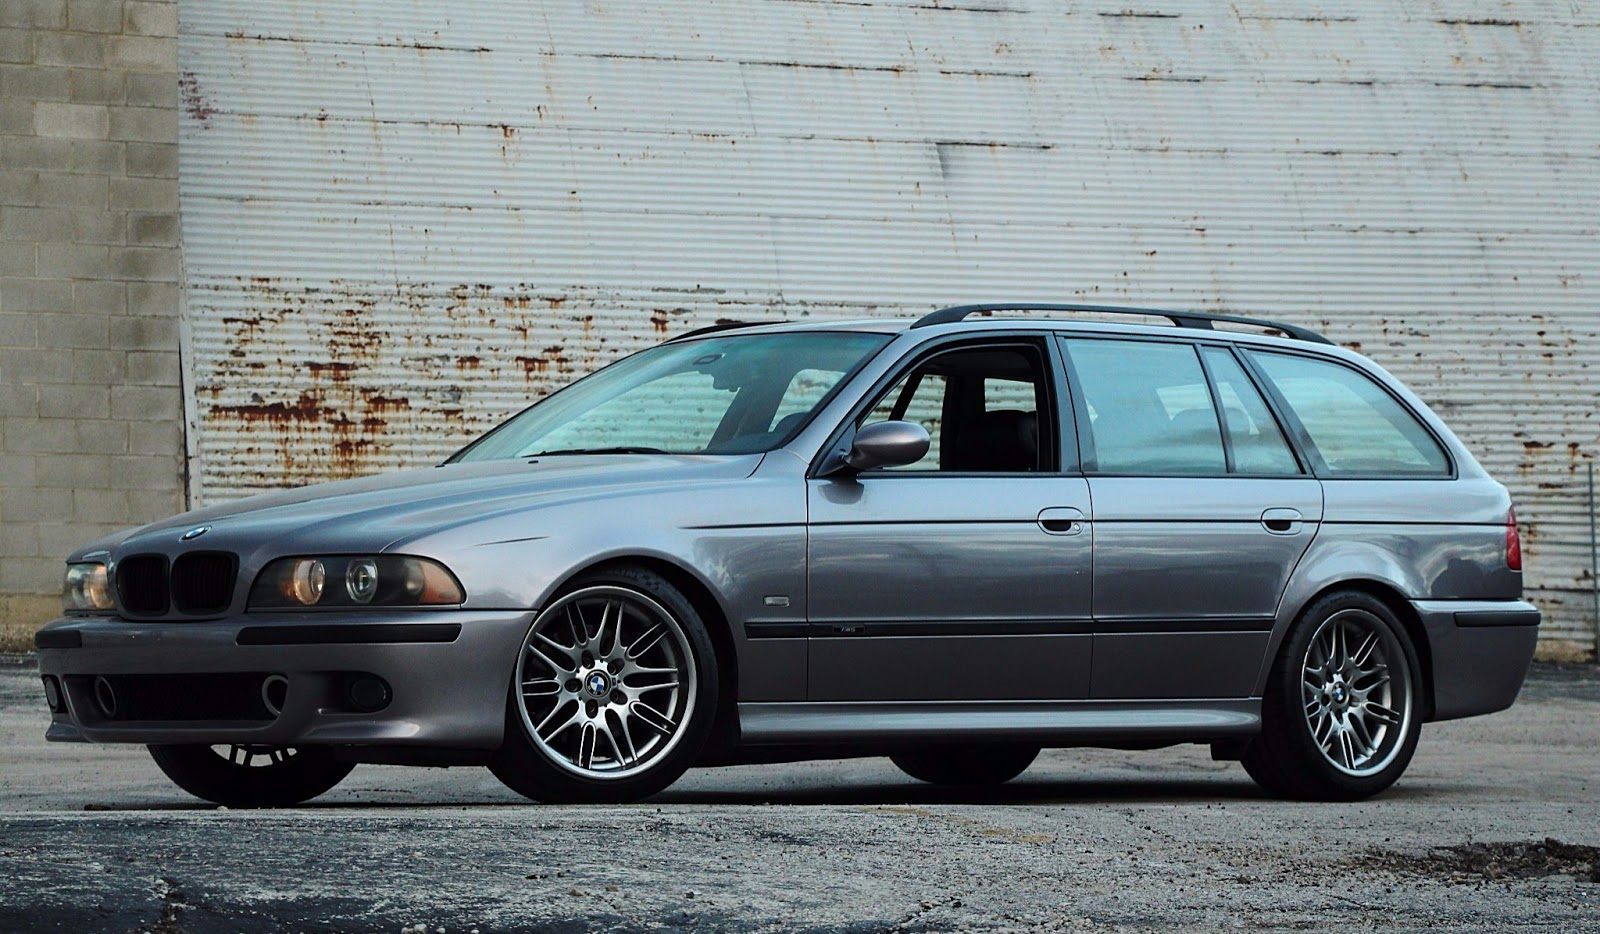 Bmw Never Made An M5 E39 Touring So This Guy Did It For